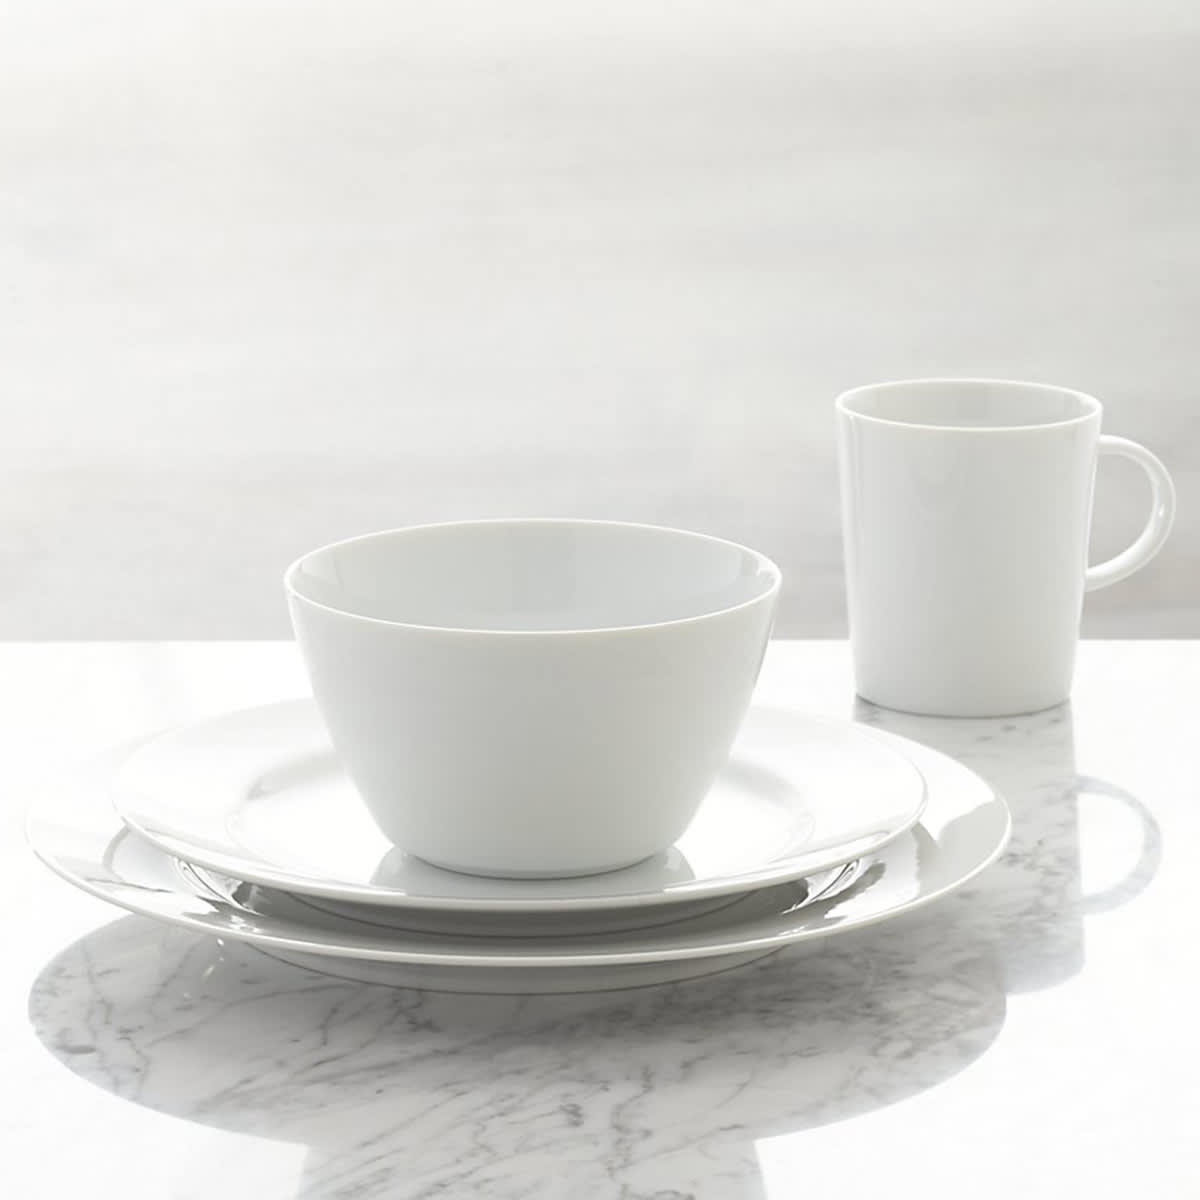 6 Dinnerware Sets That Will Outlast Your Design Whims: gallery image 4